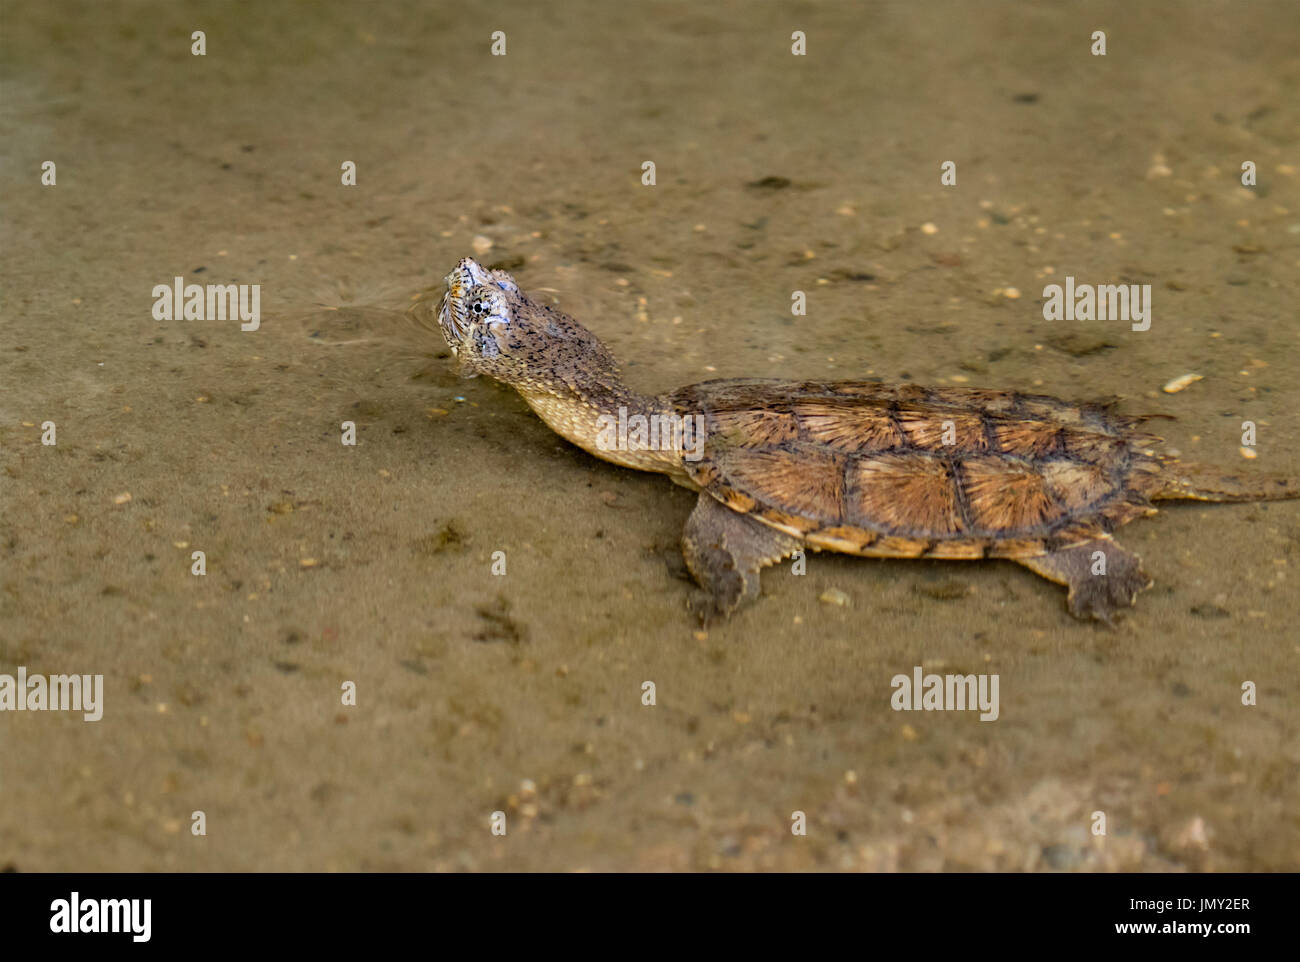 Swimming juvenile common snapping turtle (Chelydra serpentina) Stock Photo